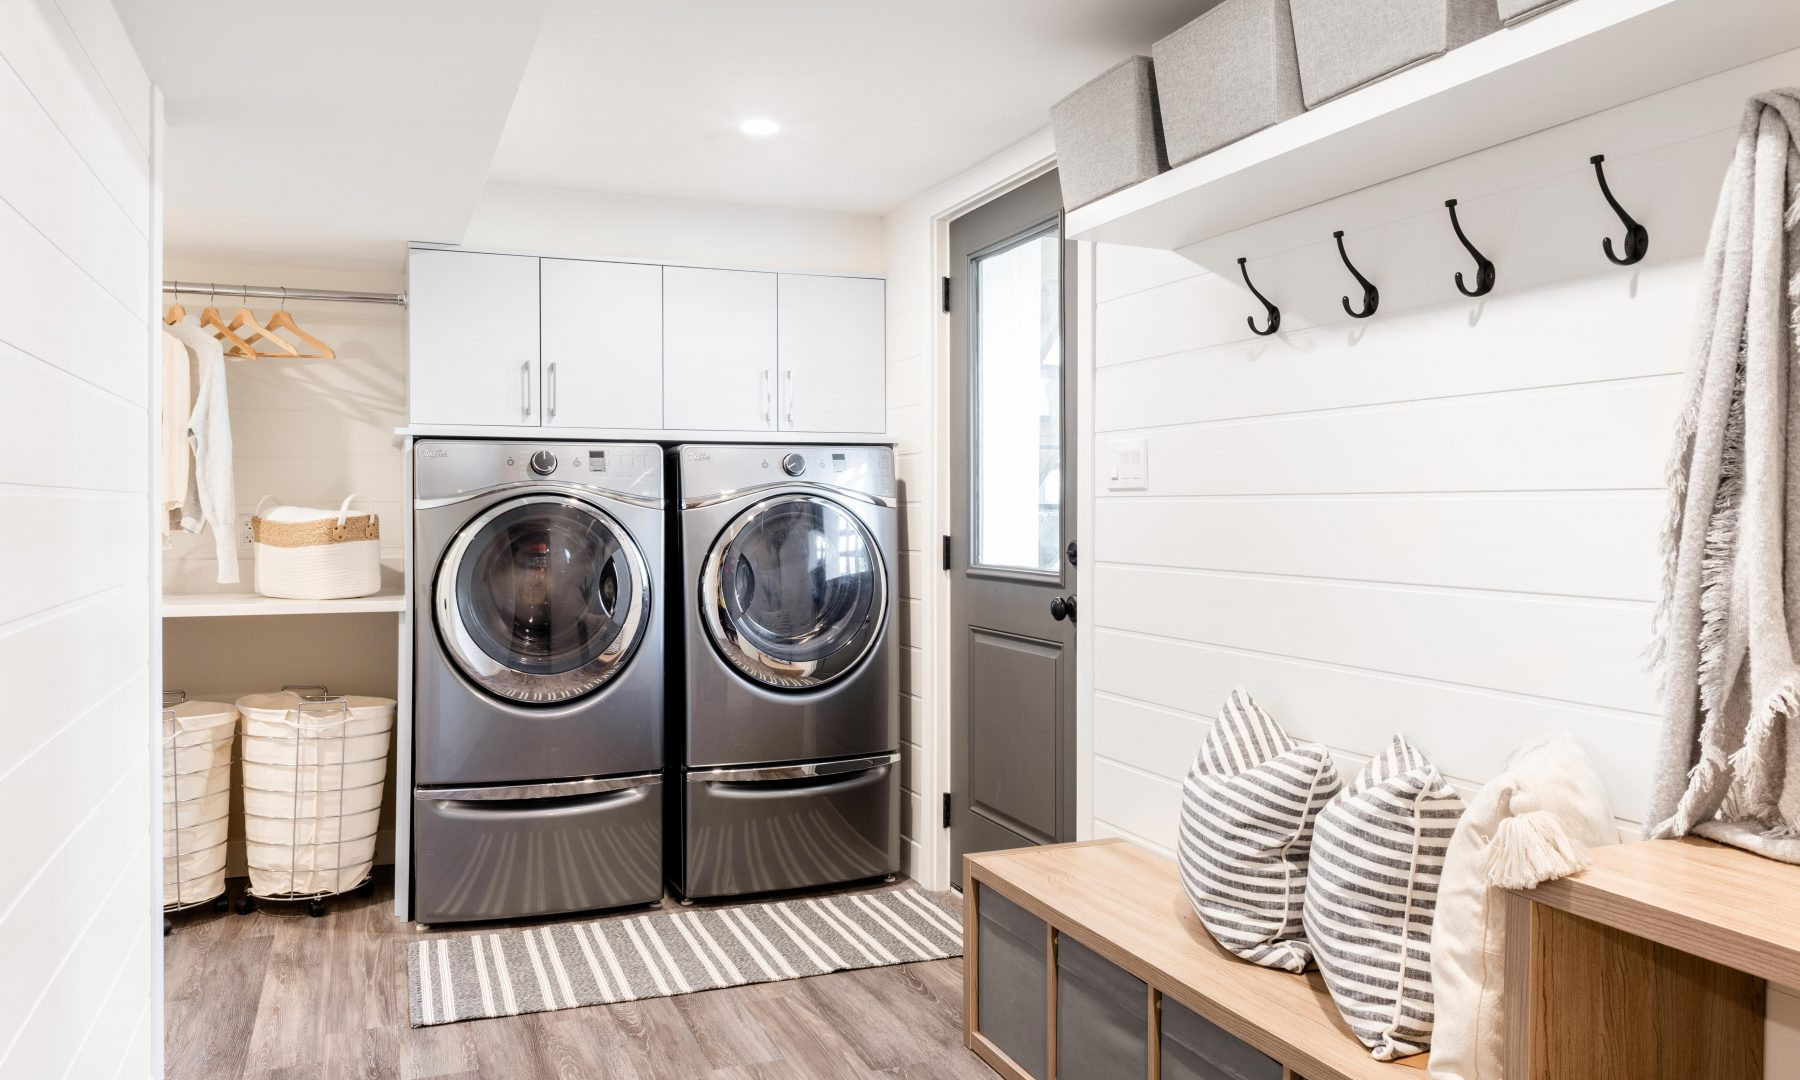 Cabico Custom Cabinets - Willows BEach laundryroom project – view with appliances and entrance bench